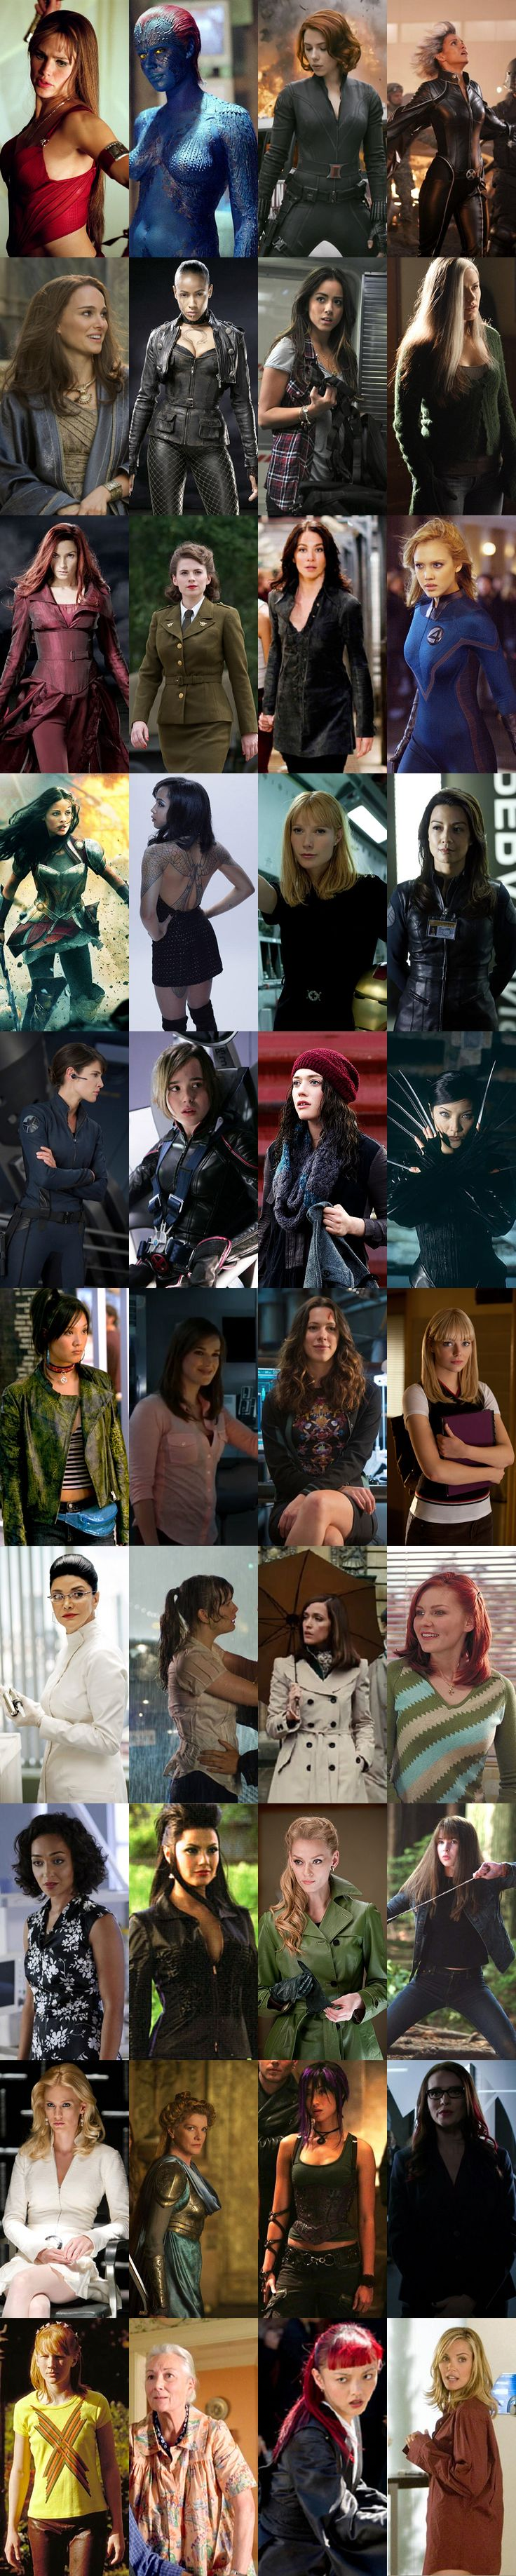 """Women of Marvel, stand to unite! Fight for what you believe! We gain more power as our numbers slowly grow, so unite!"" Elektra, Mystique, Natasha Romanoff; Black Widow, Storm, Ororo Munroe, Jane Foster, Aunt May, Skye, Jemma Simmons, Simmons, Maria Hill, Victoria Hand, Emma Frost, Jean Grey, Frigga, Girl in the Flower Dress, Viper; Madame Viper, Darcy Lewis, Agent Hill, Betty Ross, Mary Jane Watson, Gwen Stacey, Typhoid Mary, Peggy Carter, Kitty Pryde & Abby Miller."